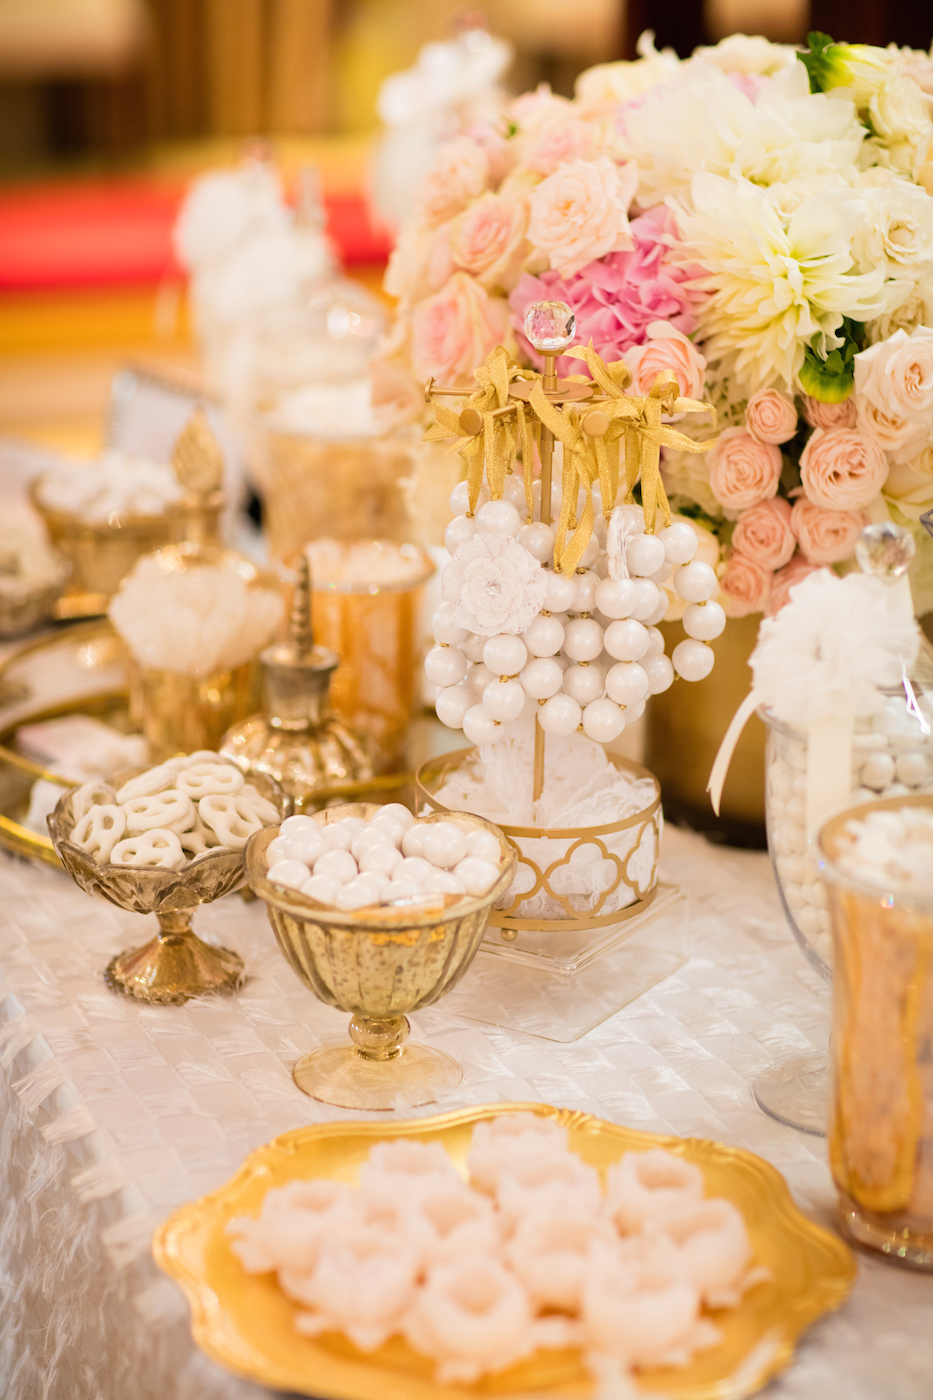 panache_bridal_inside_weddings_candybar_couture7